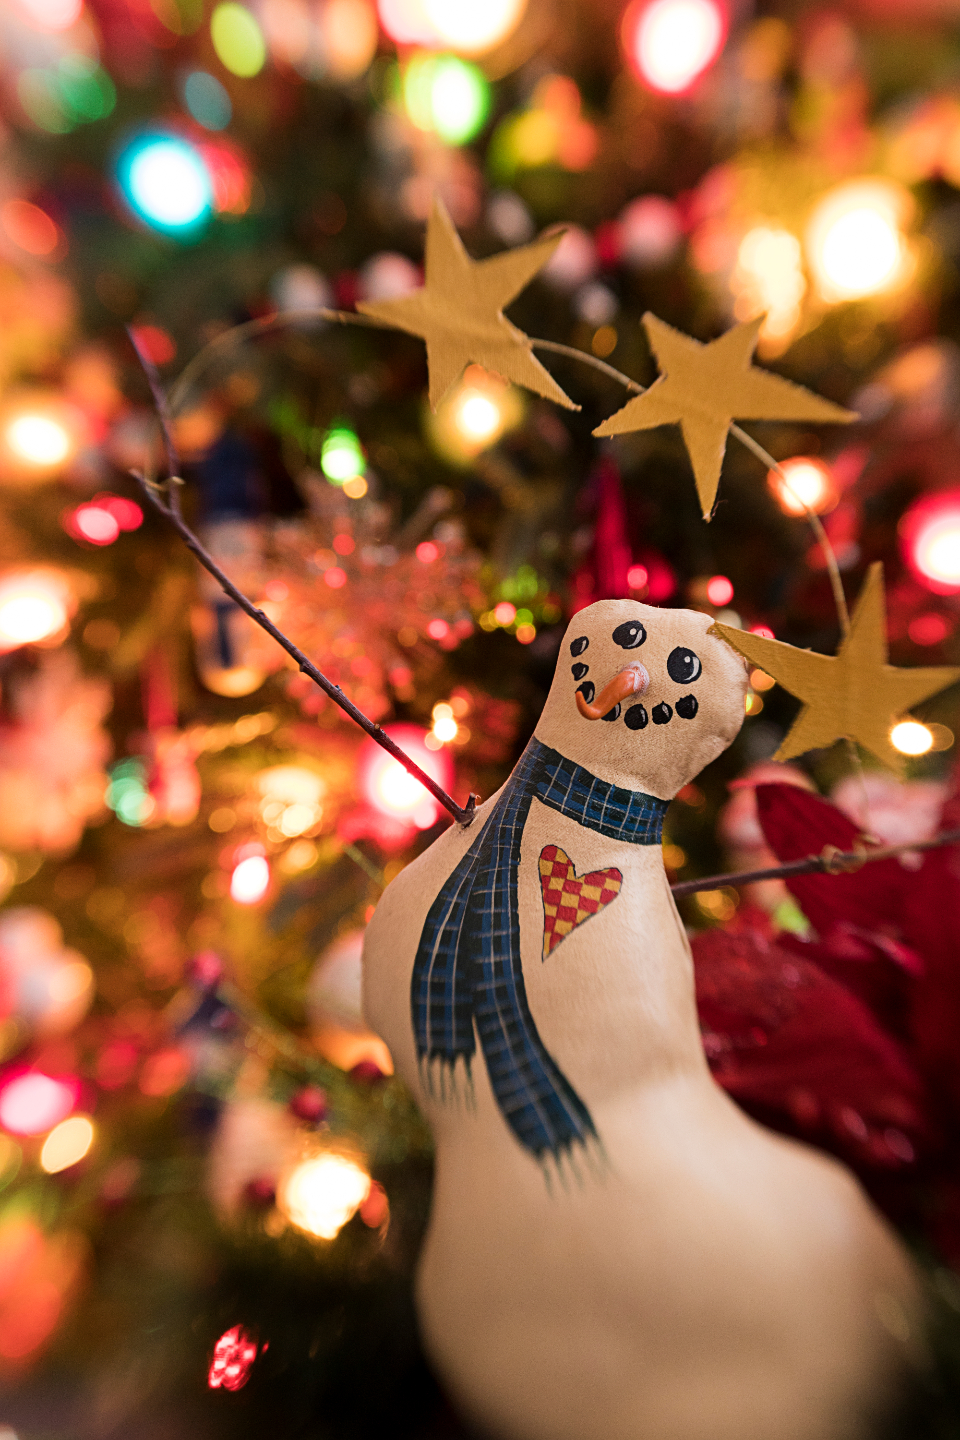 Free stock photo of snowman holiday